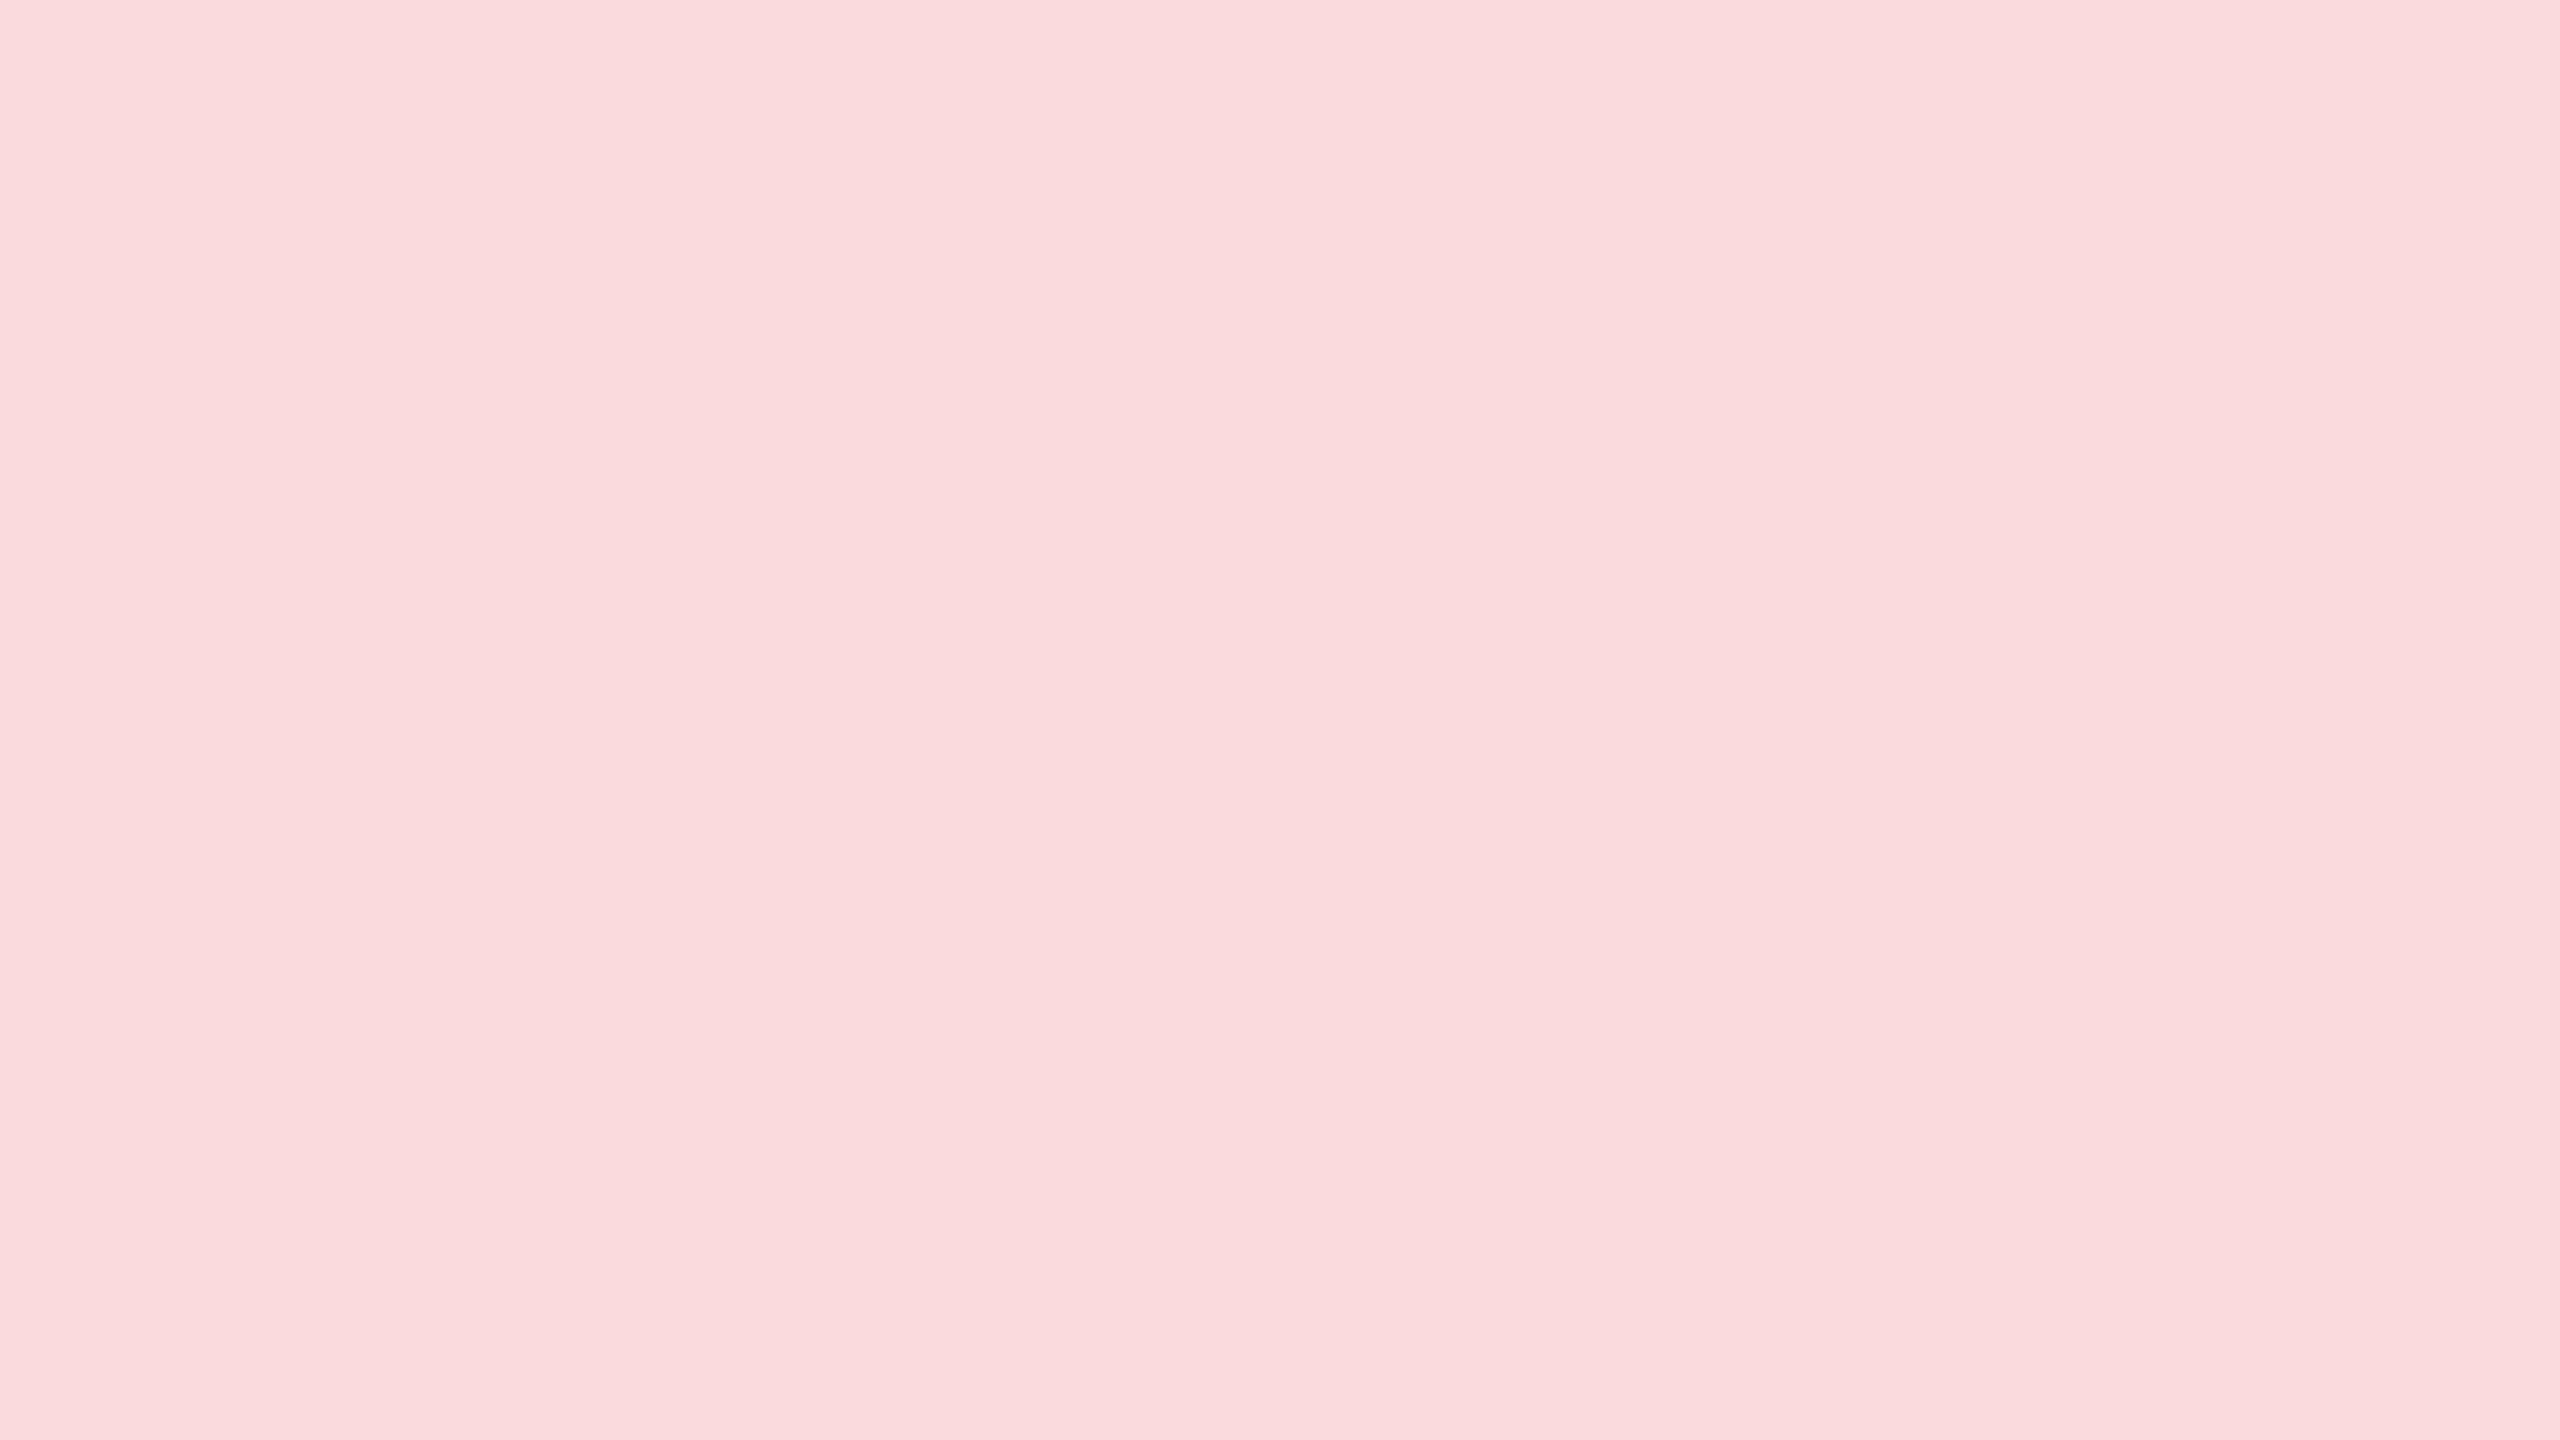 2560x1440 Pale Pink Solid Color Background